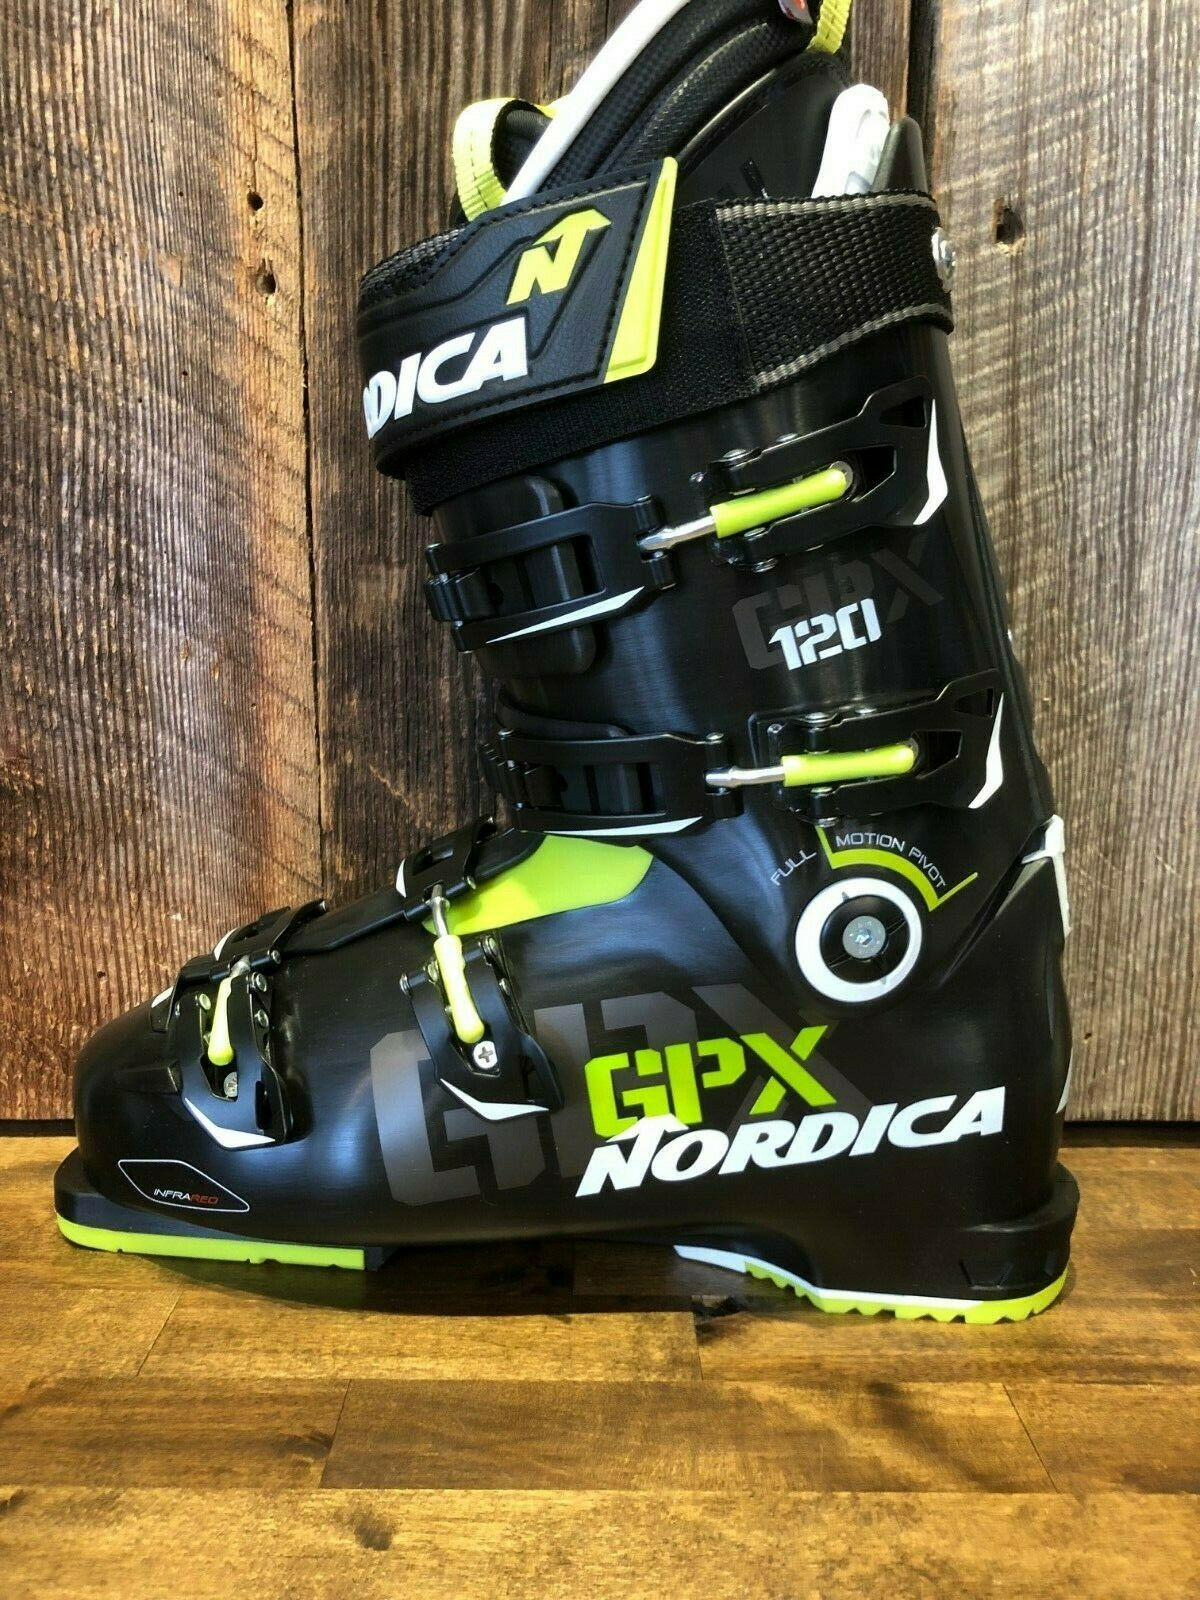 Norcica GPX 120 Storlek 10.5 (28.5) -Ny